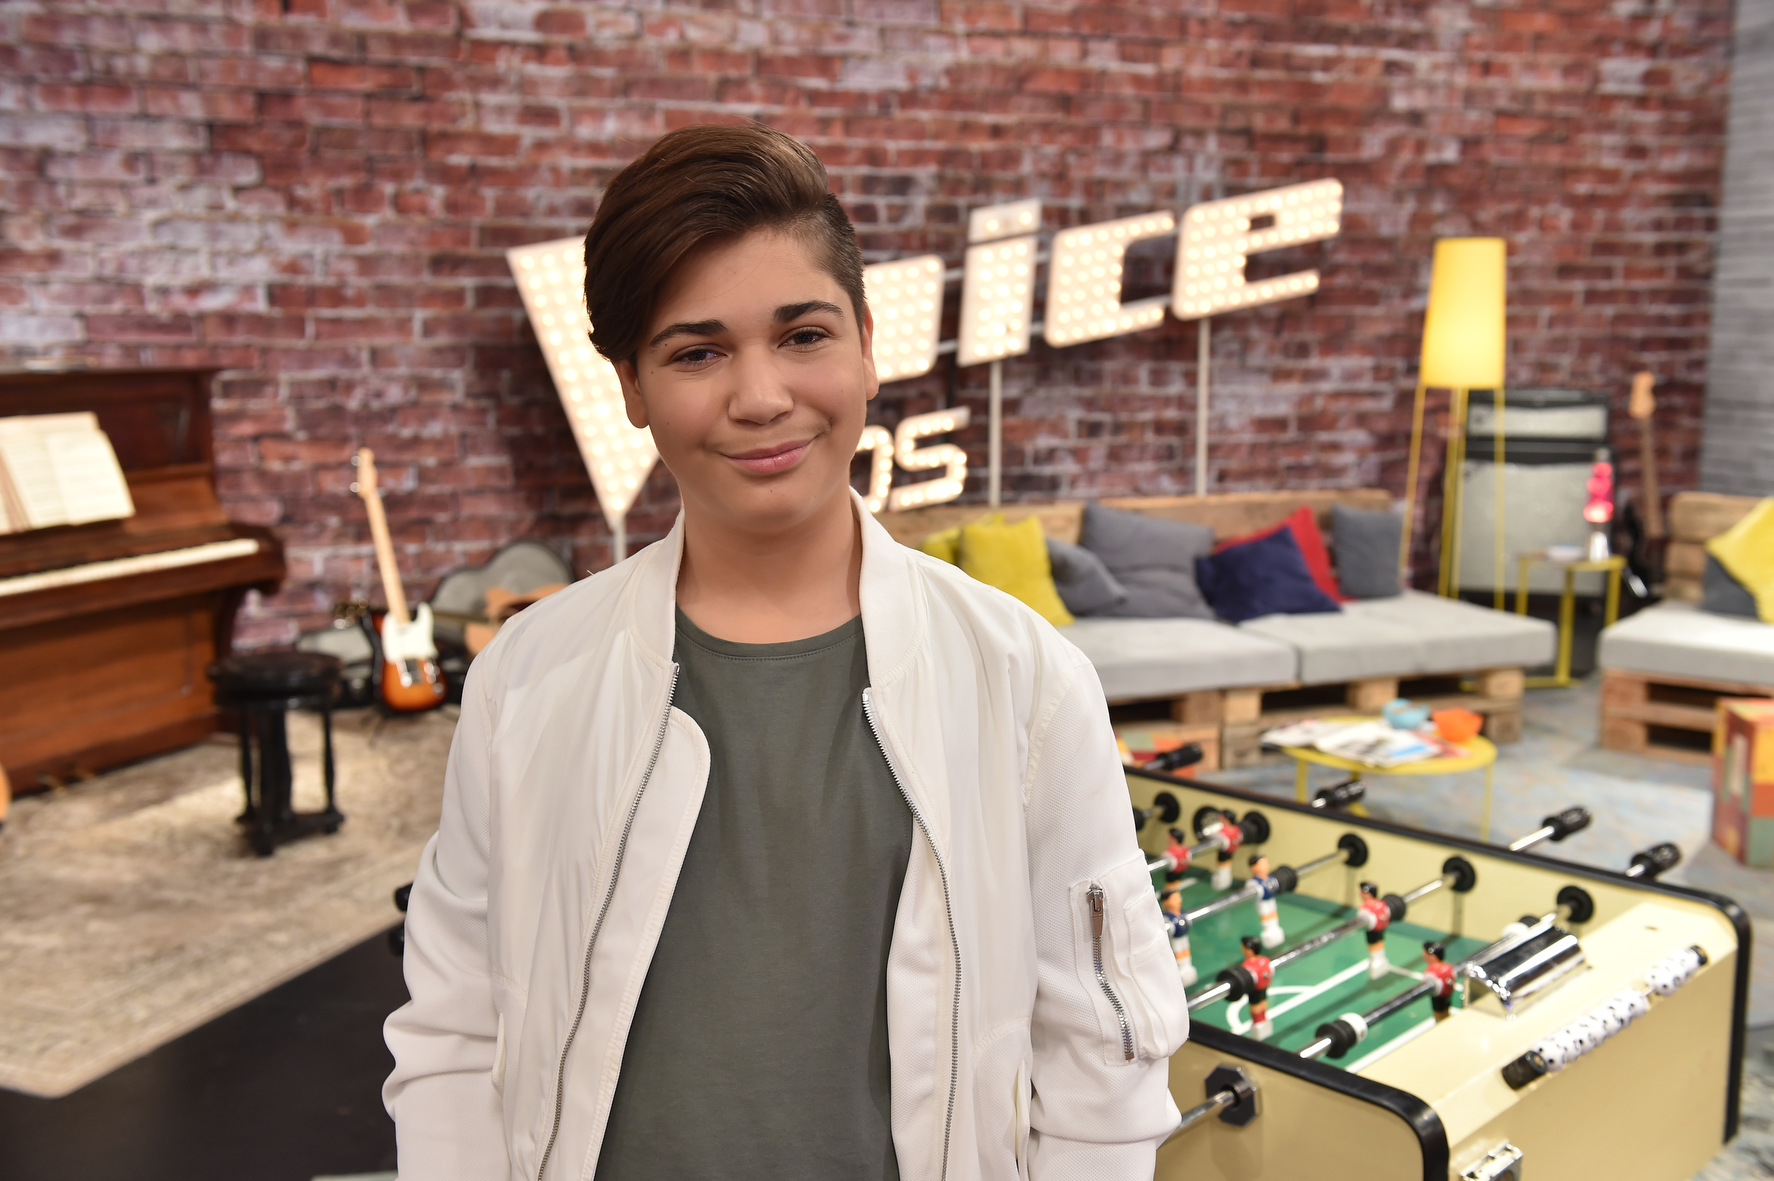 riesen berraschung f r l becker miran bei the voice kids am sonntag pressemitteilung sat 1. Black Bedroom Furniture Sets. Home Design Ideas